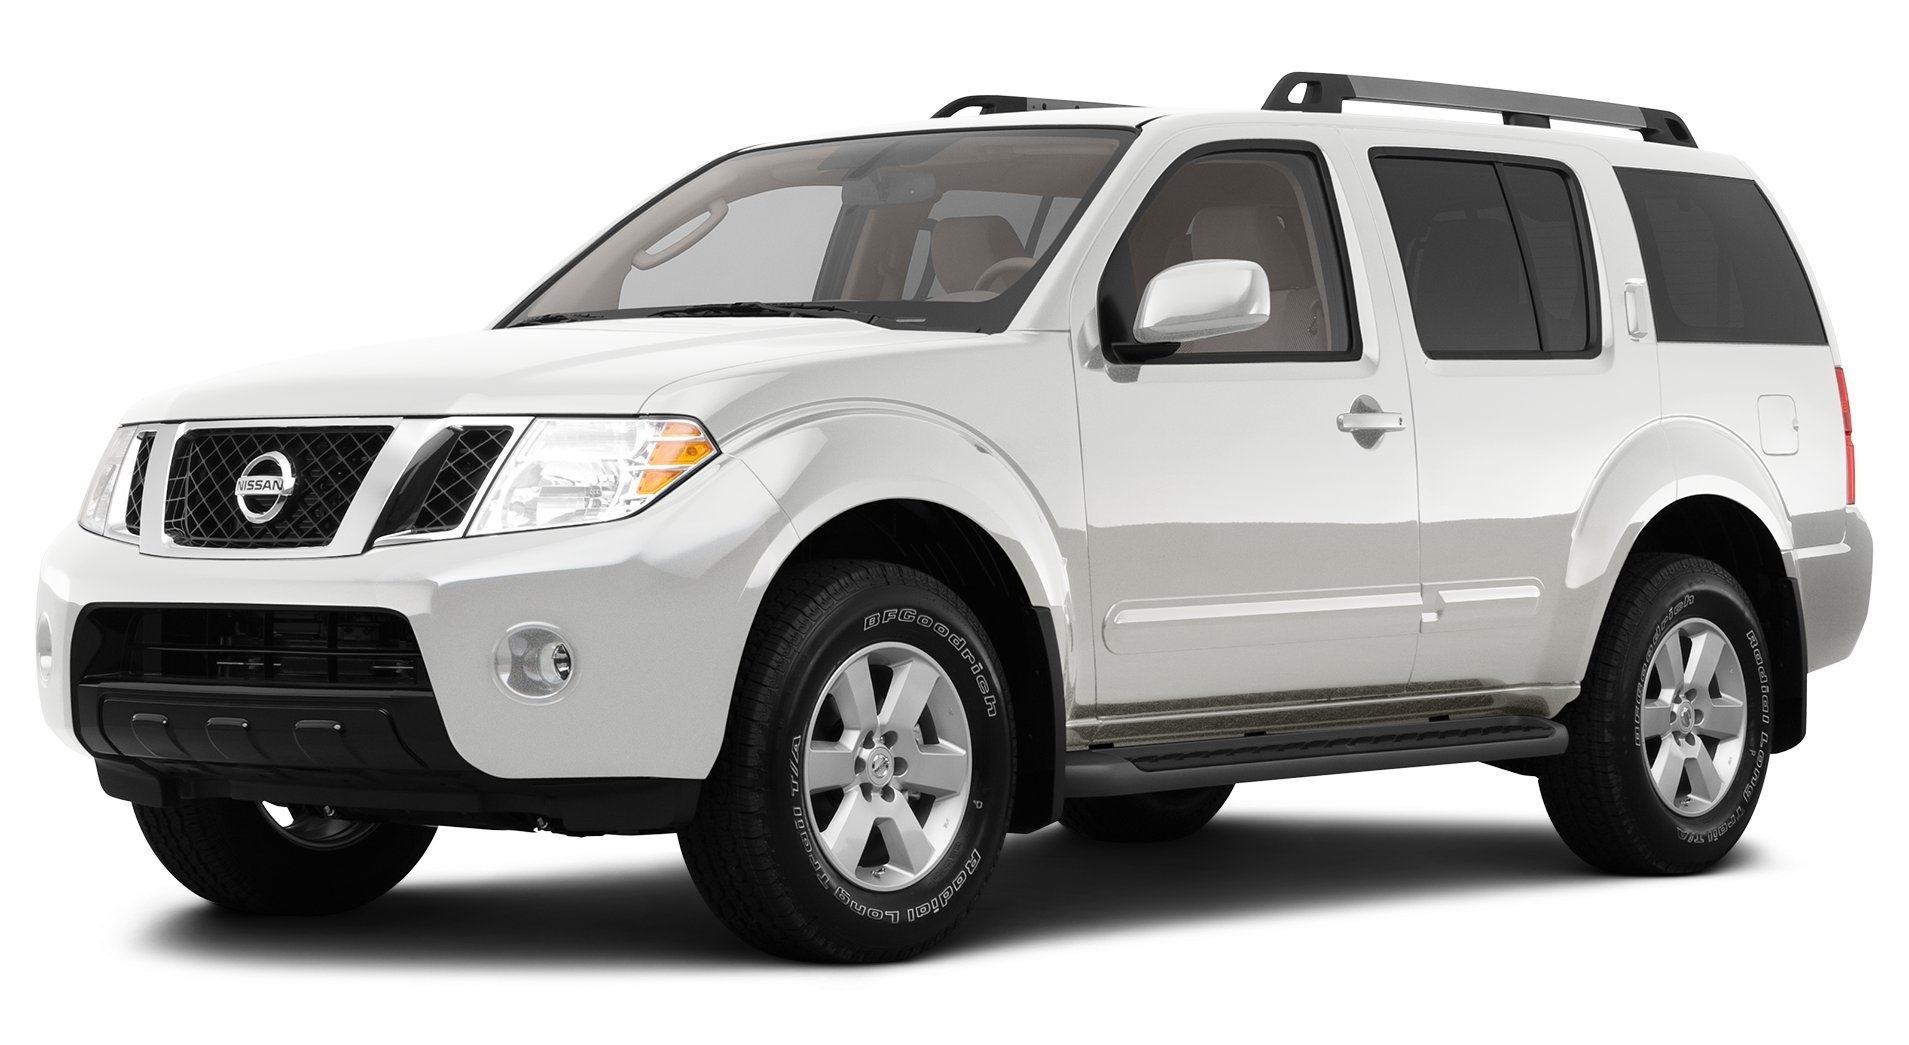 motoring twin pathfinder nissan ford vs test intro explorer reviews